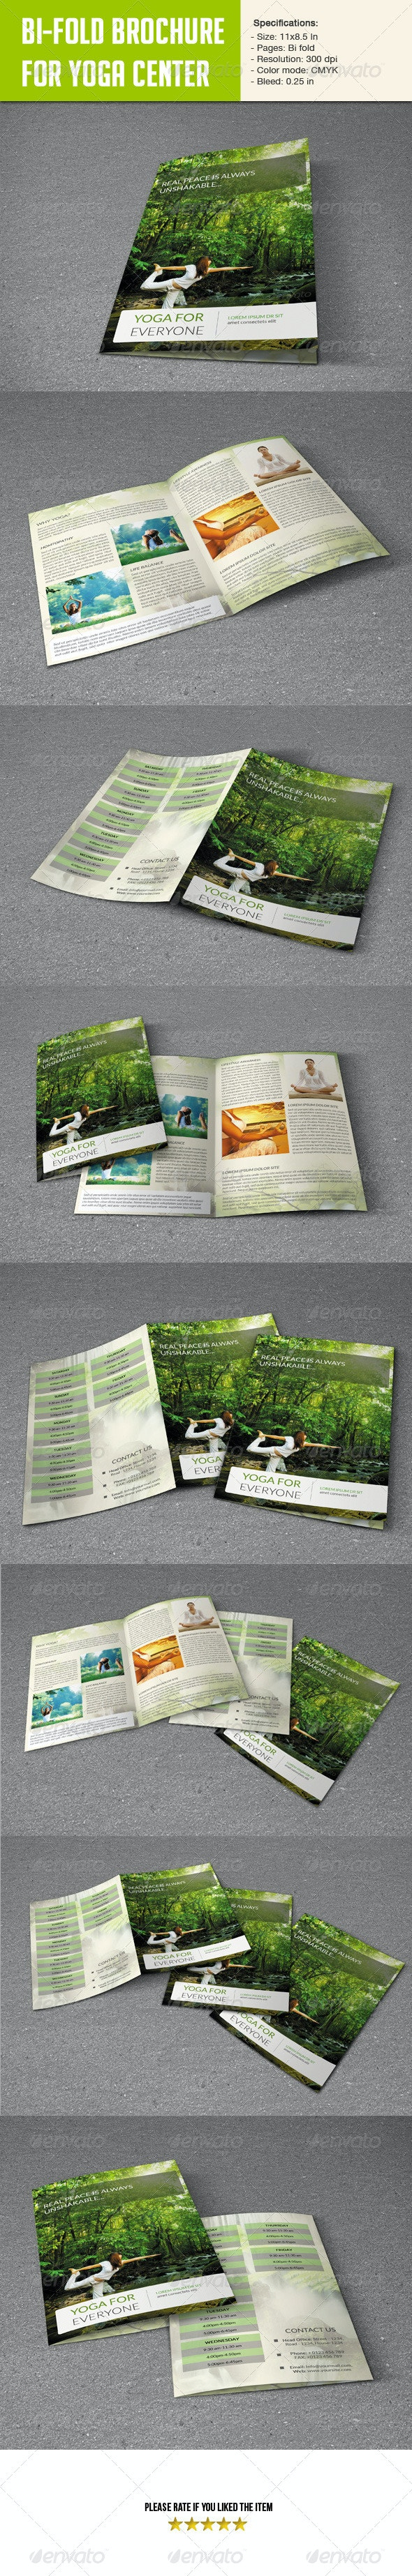 Bifold Brochure for Yoga Center - Brochures Print Templates